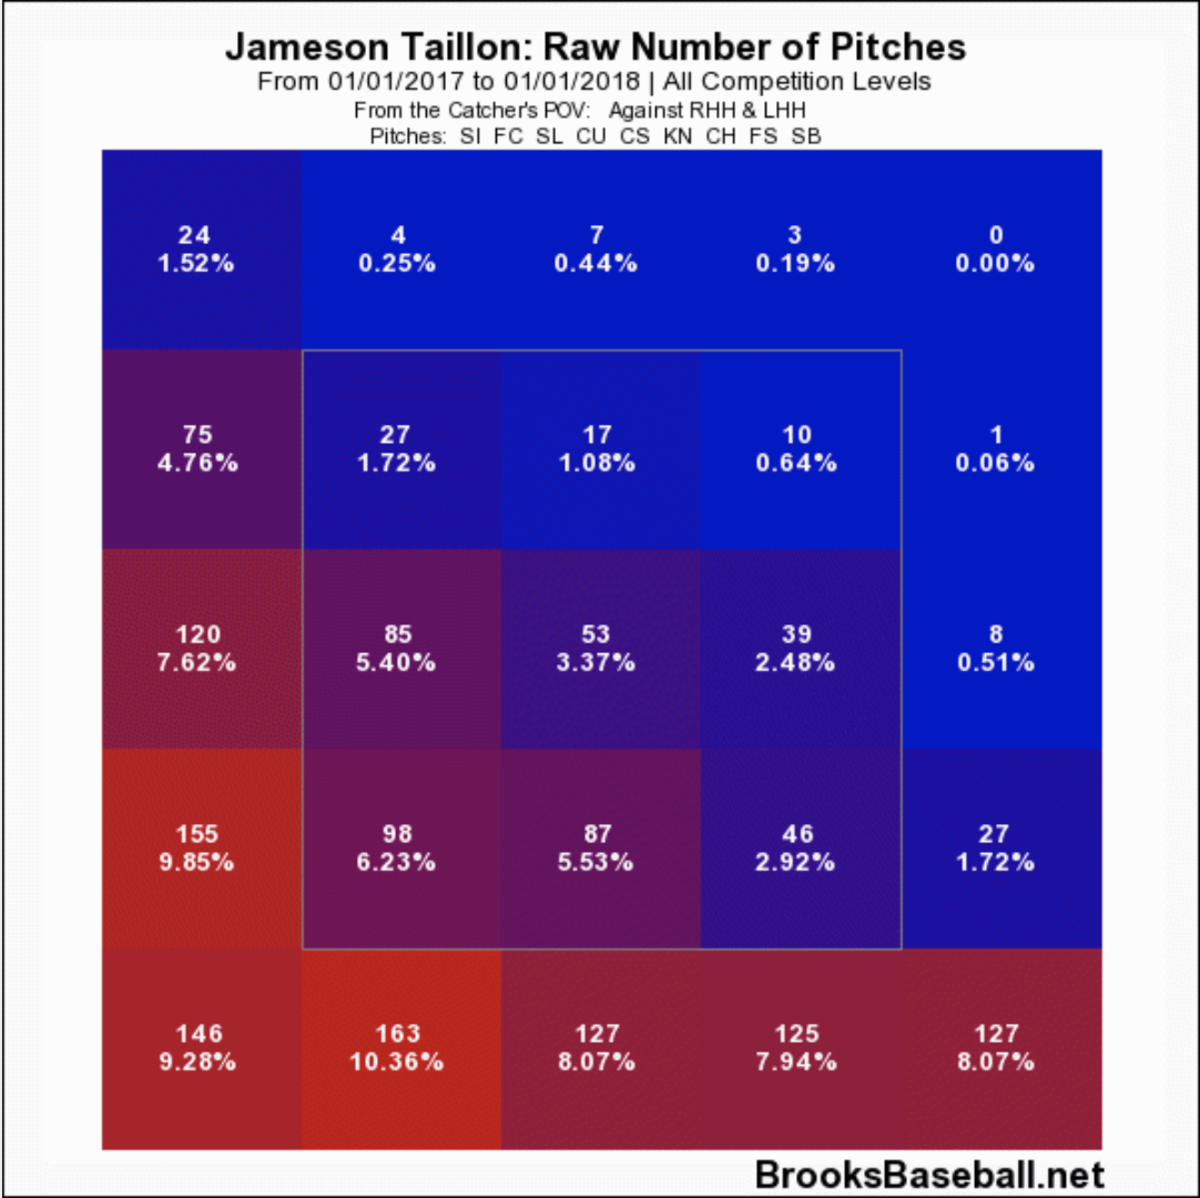 taillon_pic1.png